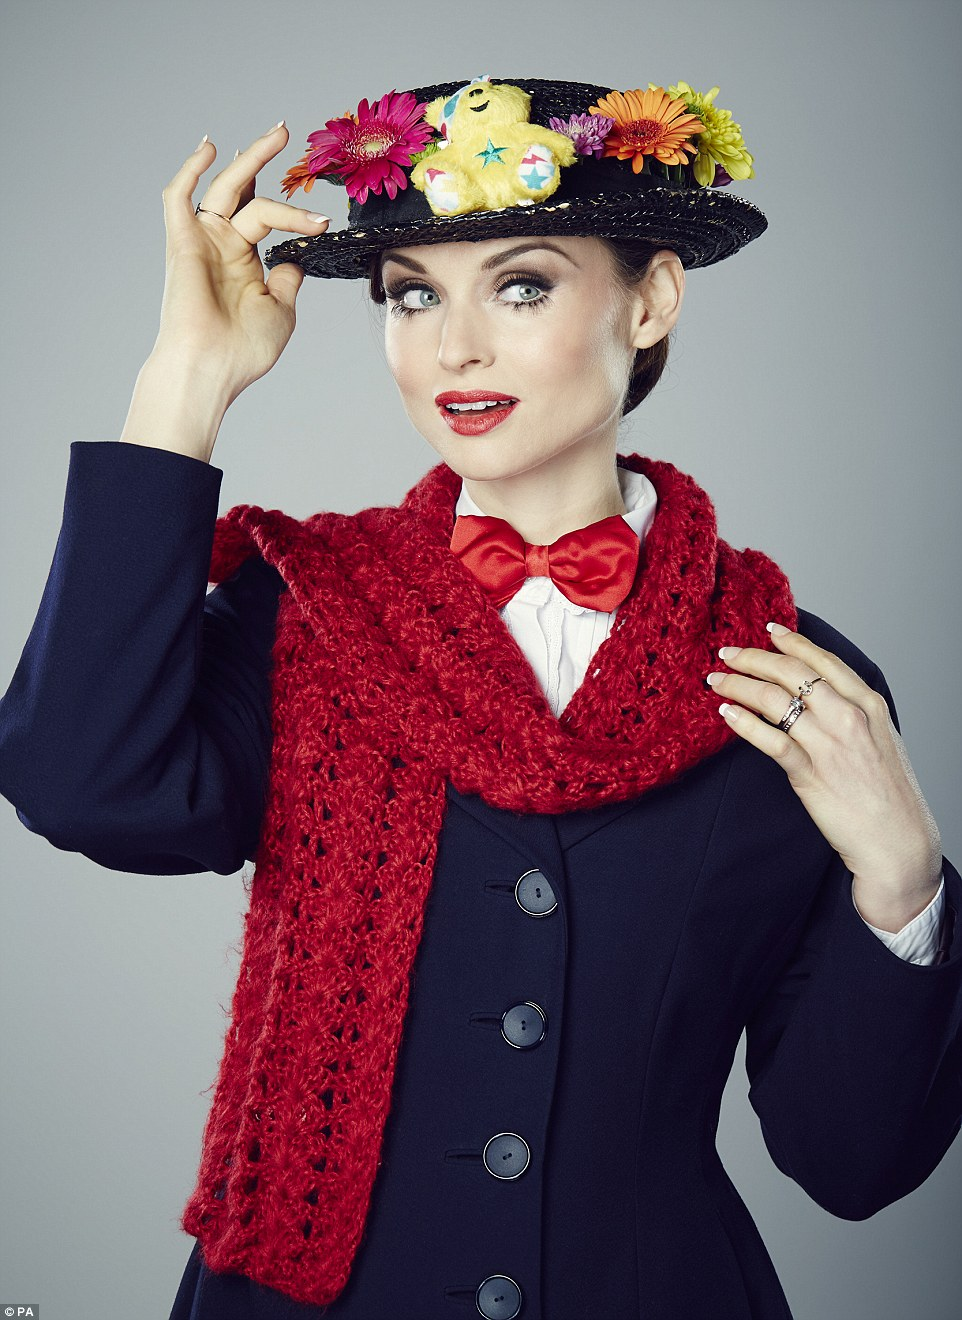 Supercalifrigalisticexpialidocious! Sophie Ellis Bextor could have passed for Julie Andrews as the wonderful nanny Mary Poppins in her costume